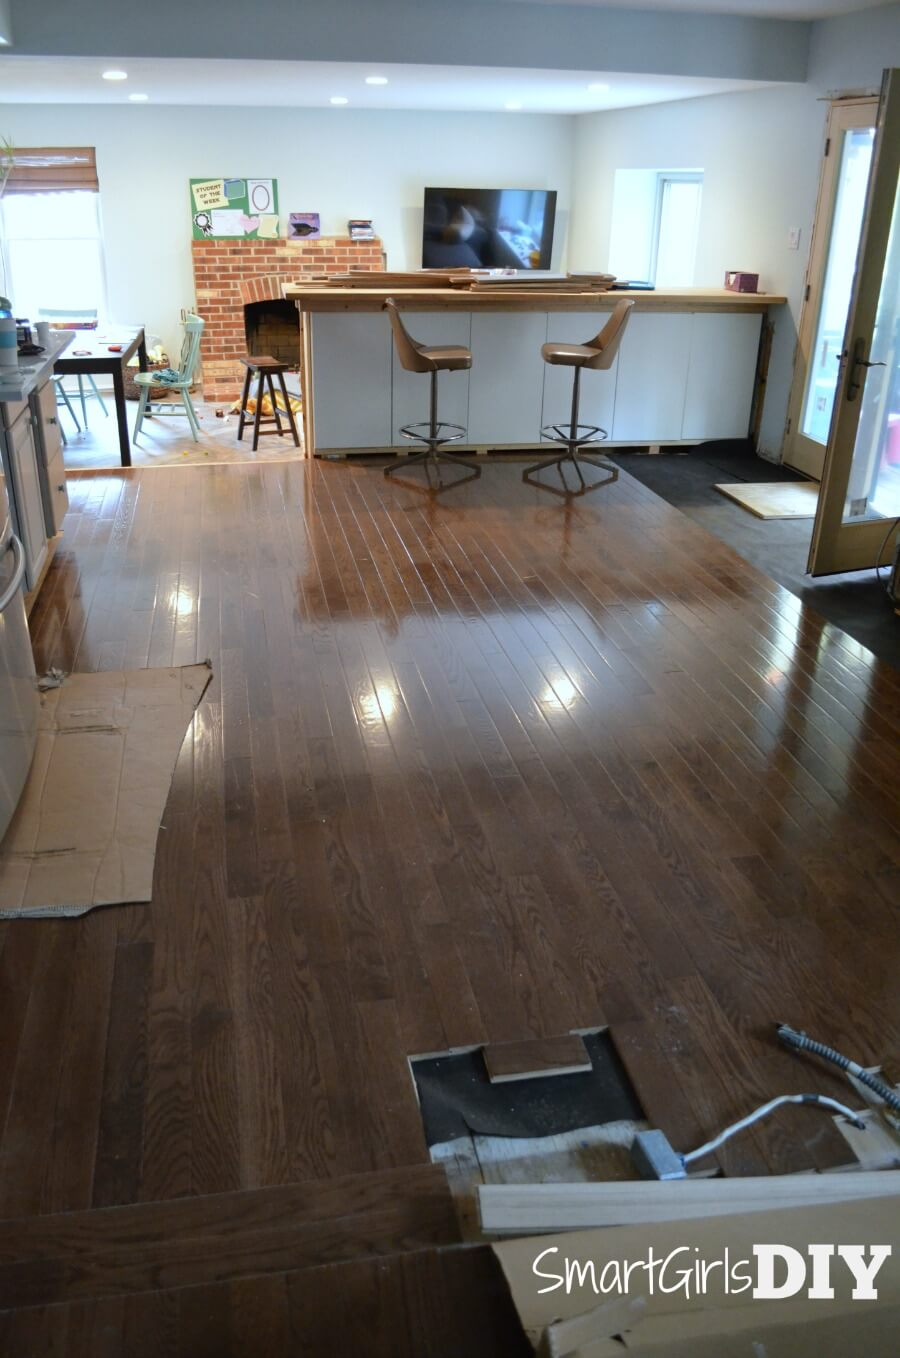 DIY hardwood floor installed in kitchen